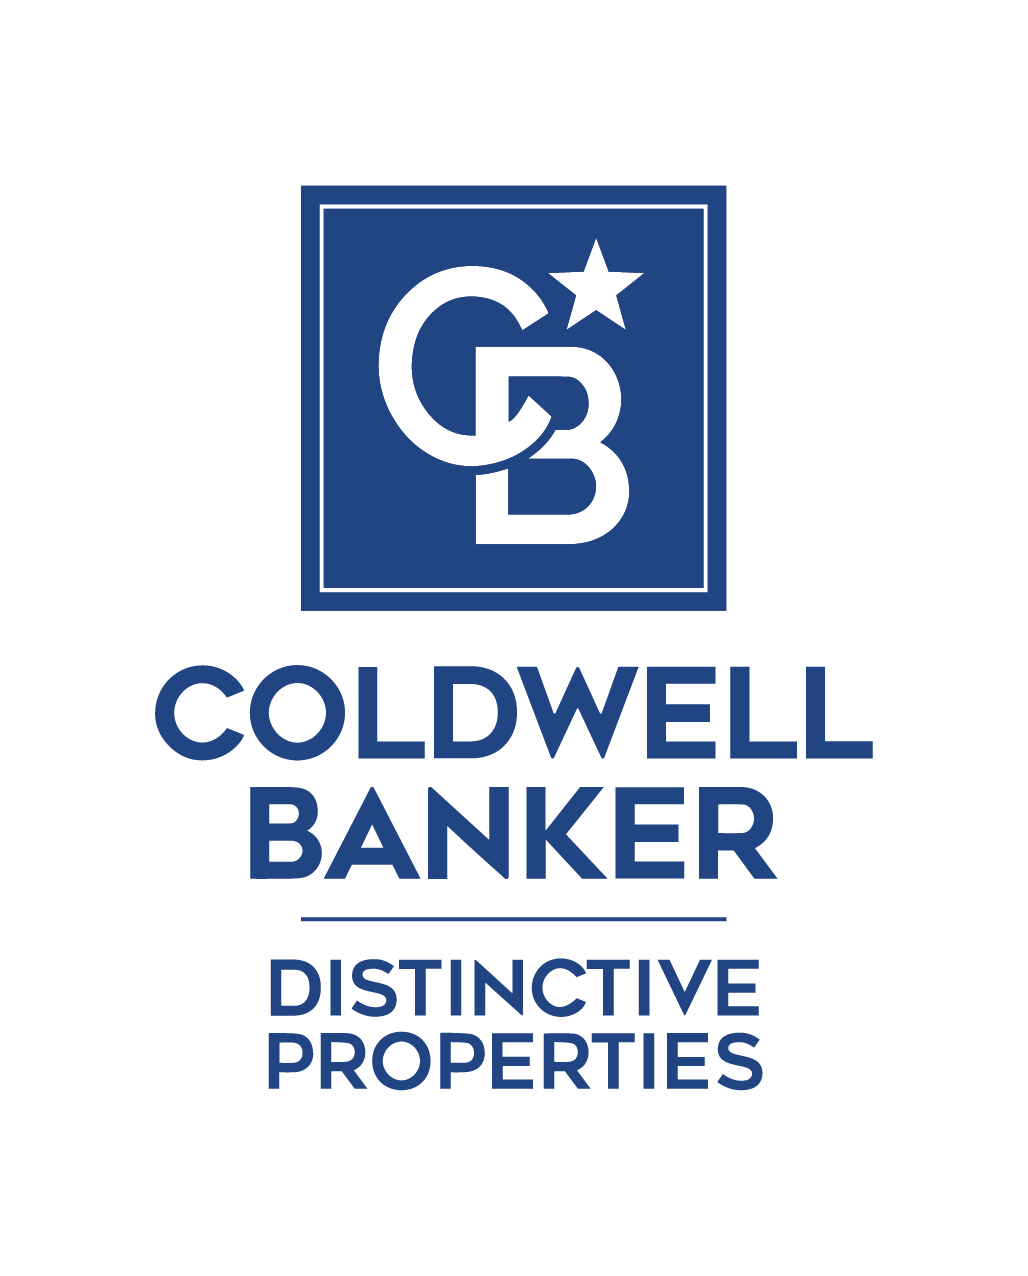 Beverly Shook - Coldwell Banker Distinctive Properties